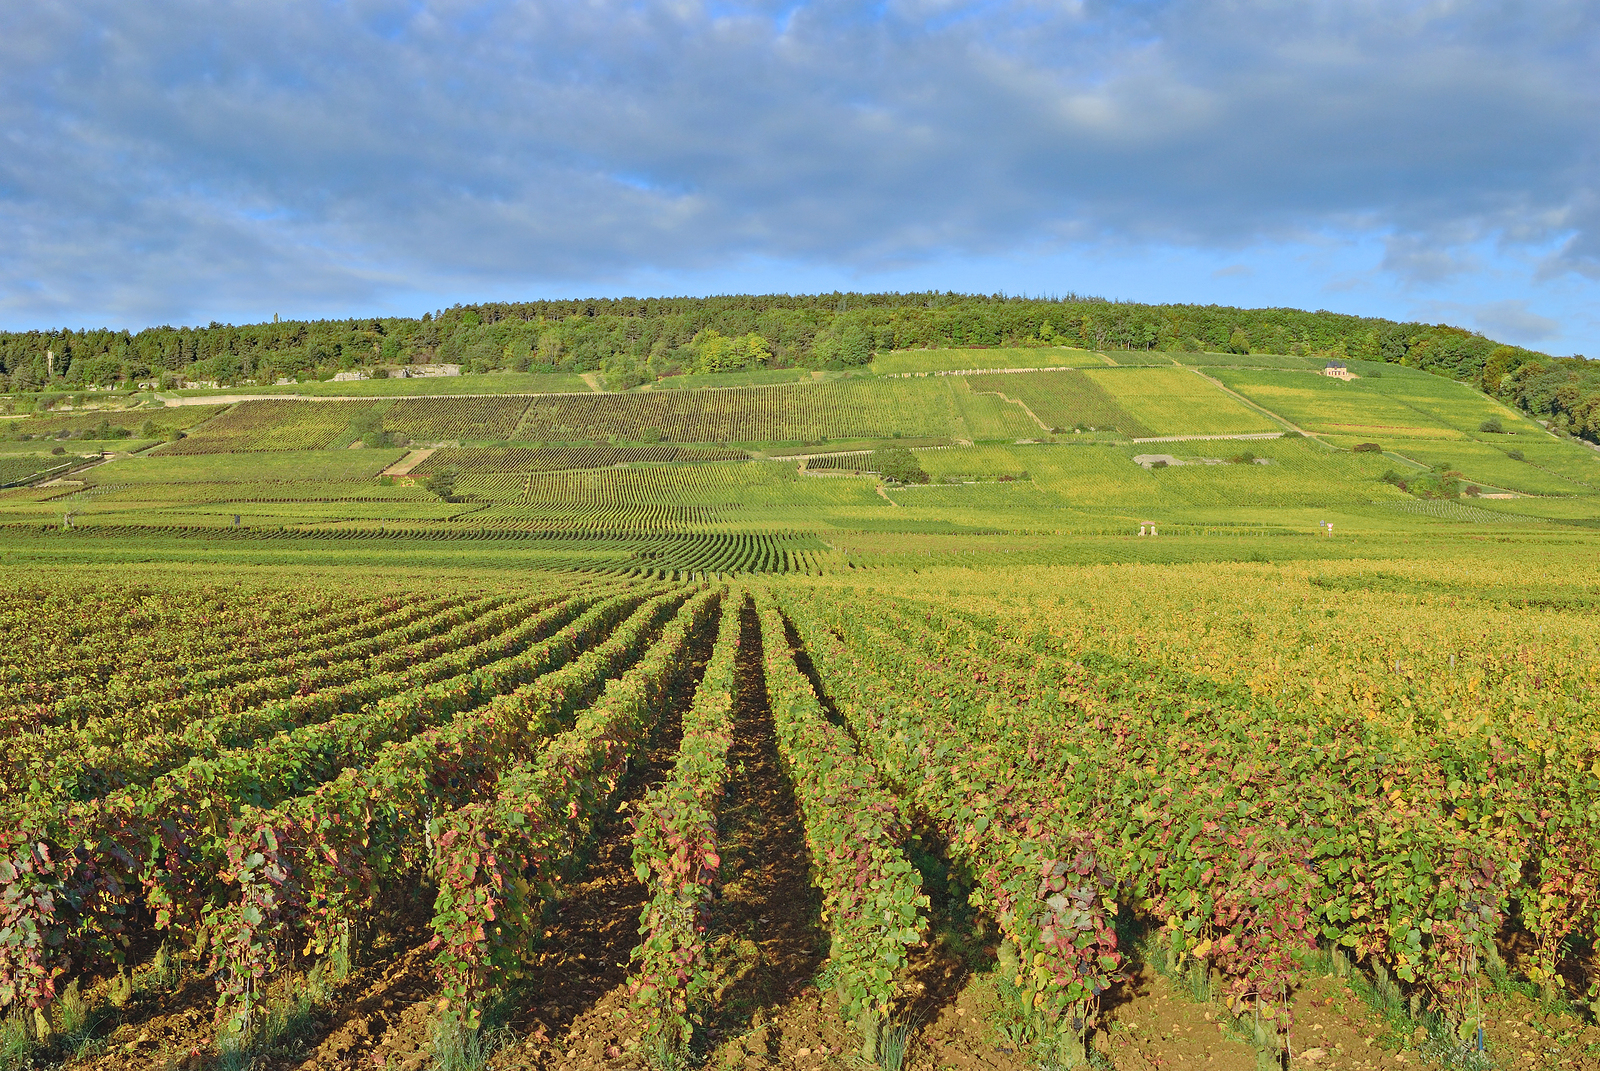 Vineyard Landscape in Burgundy near Wine Village of Chablis,France